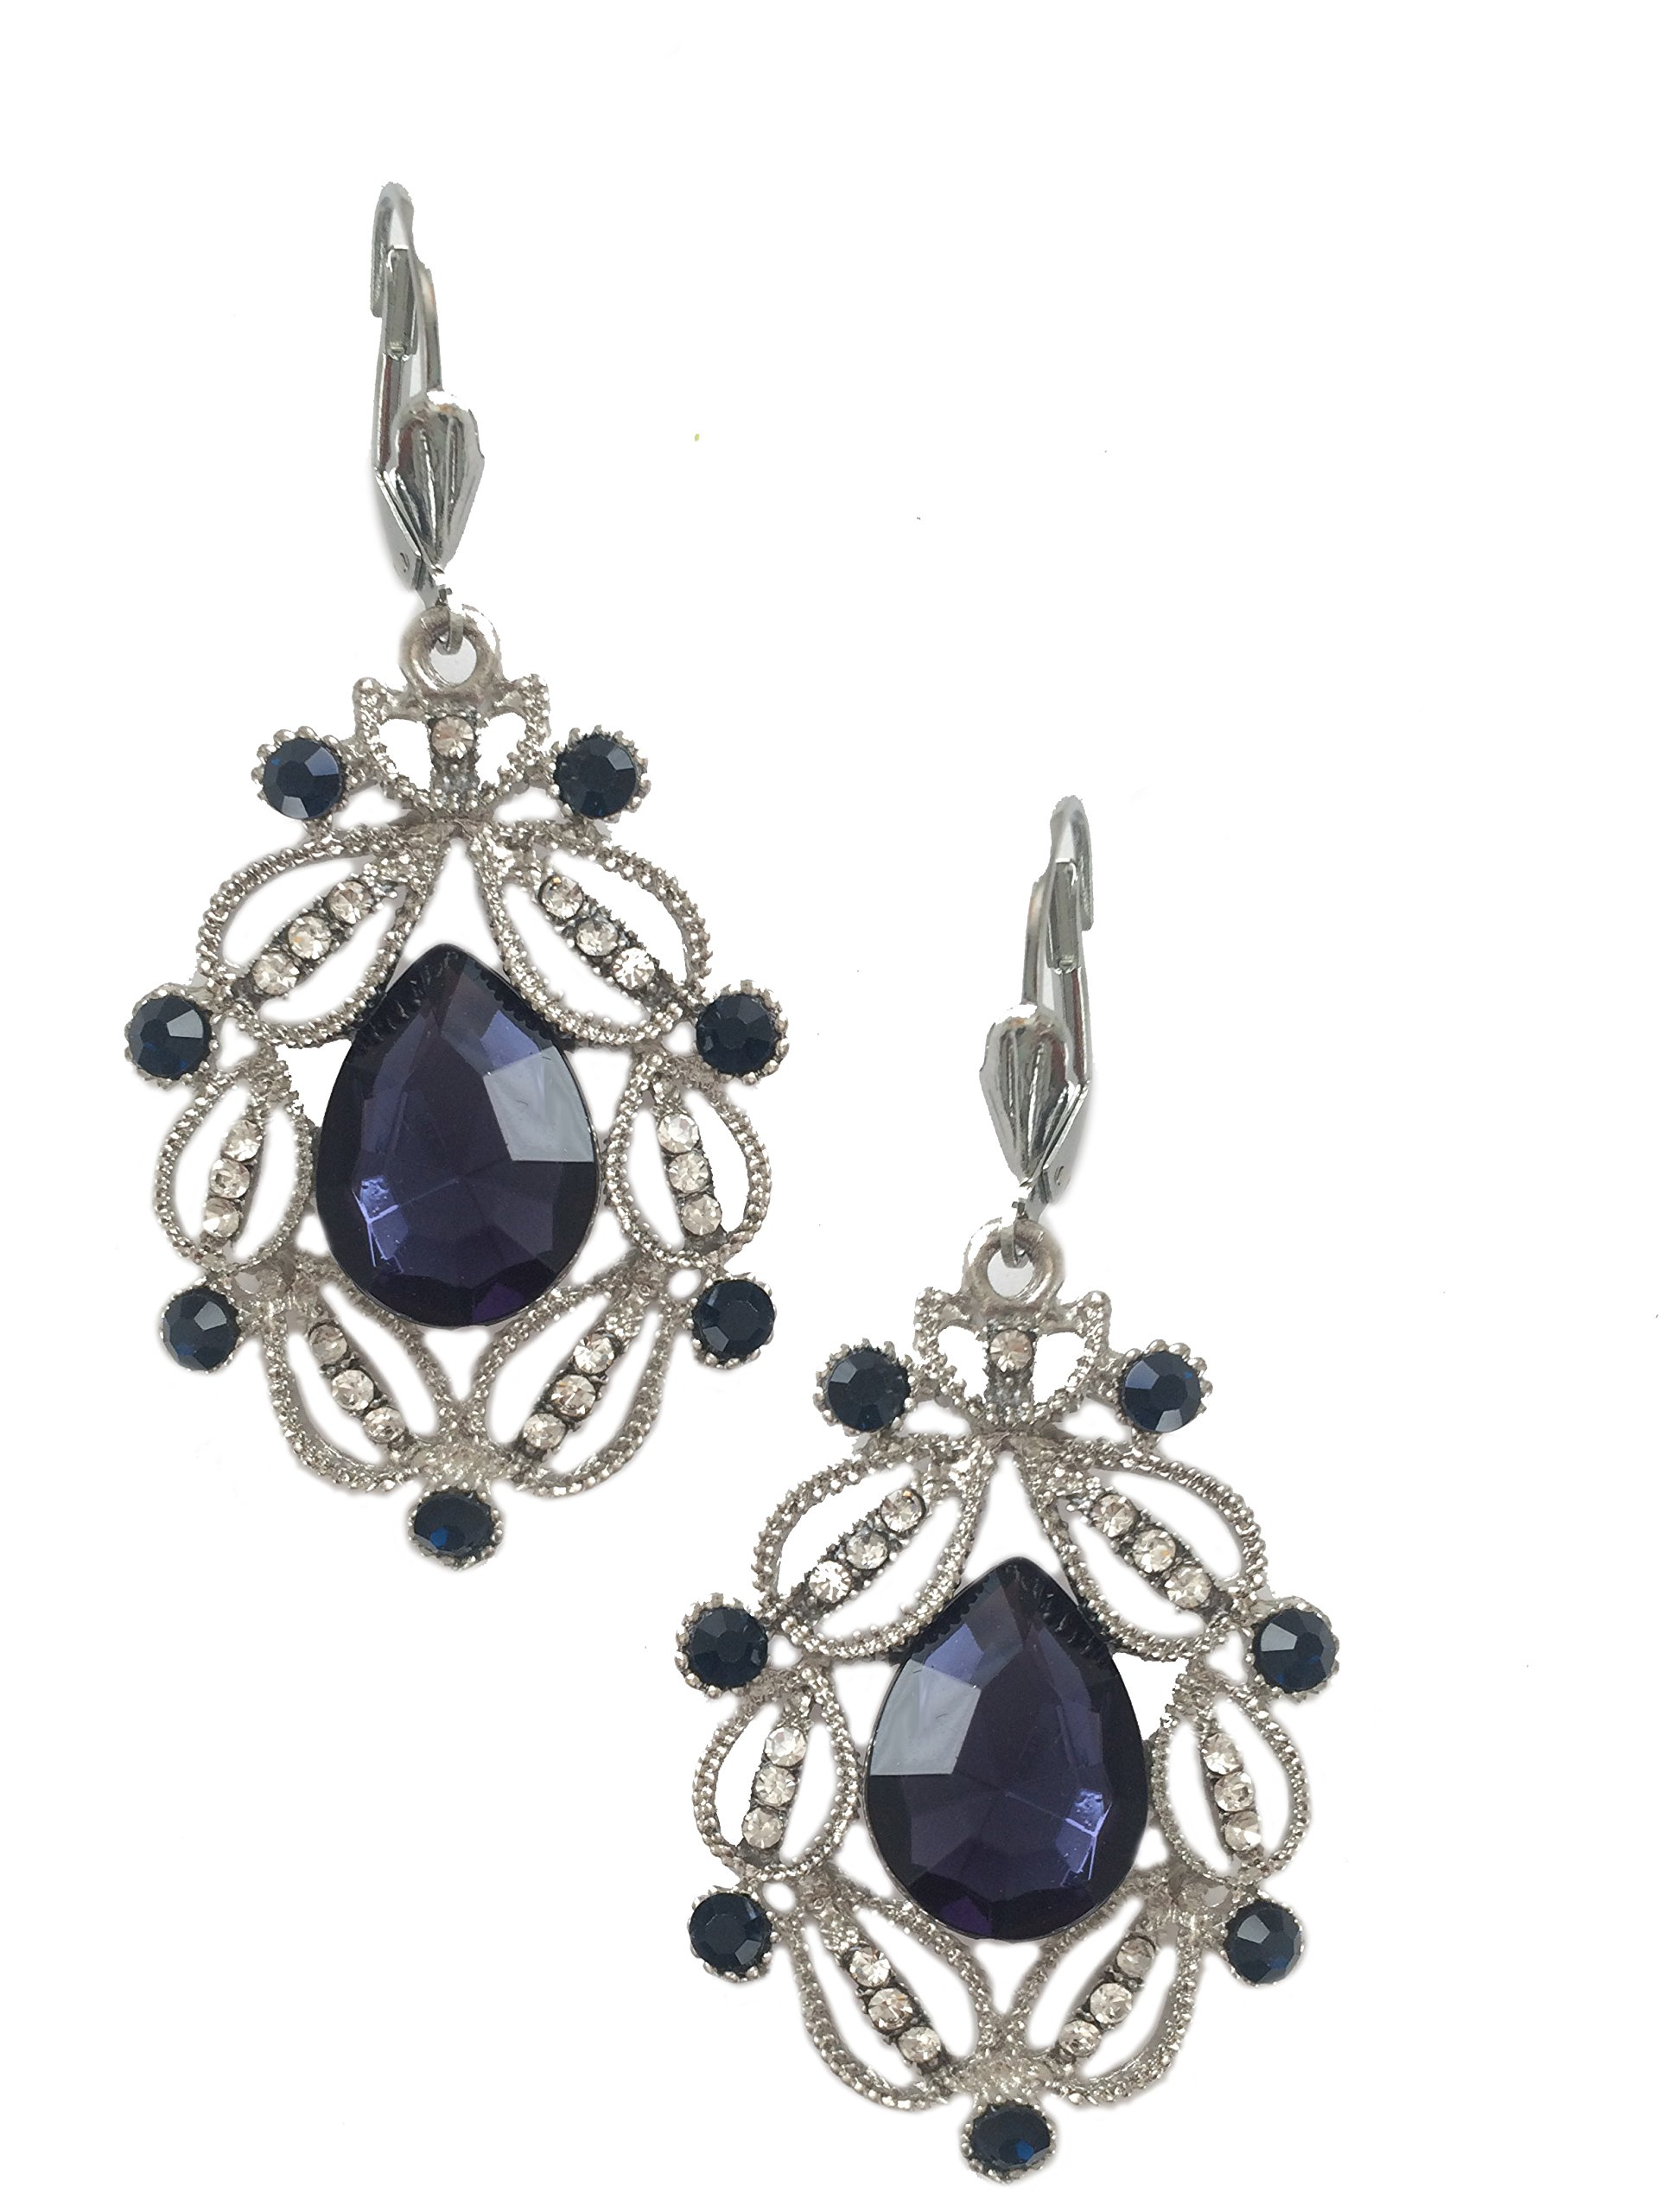 Silver Tone Art Deco Antique Vintage Style Blue Sapphire Rhinestone Filigree Dangle Earrings